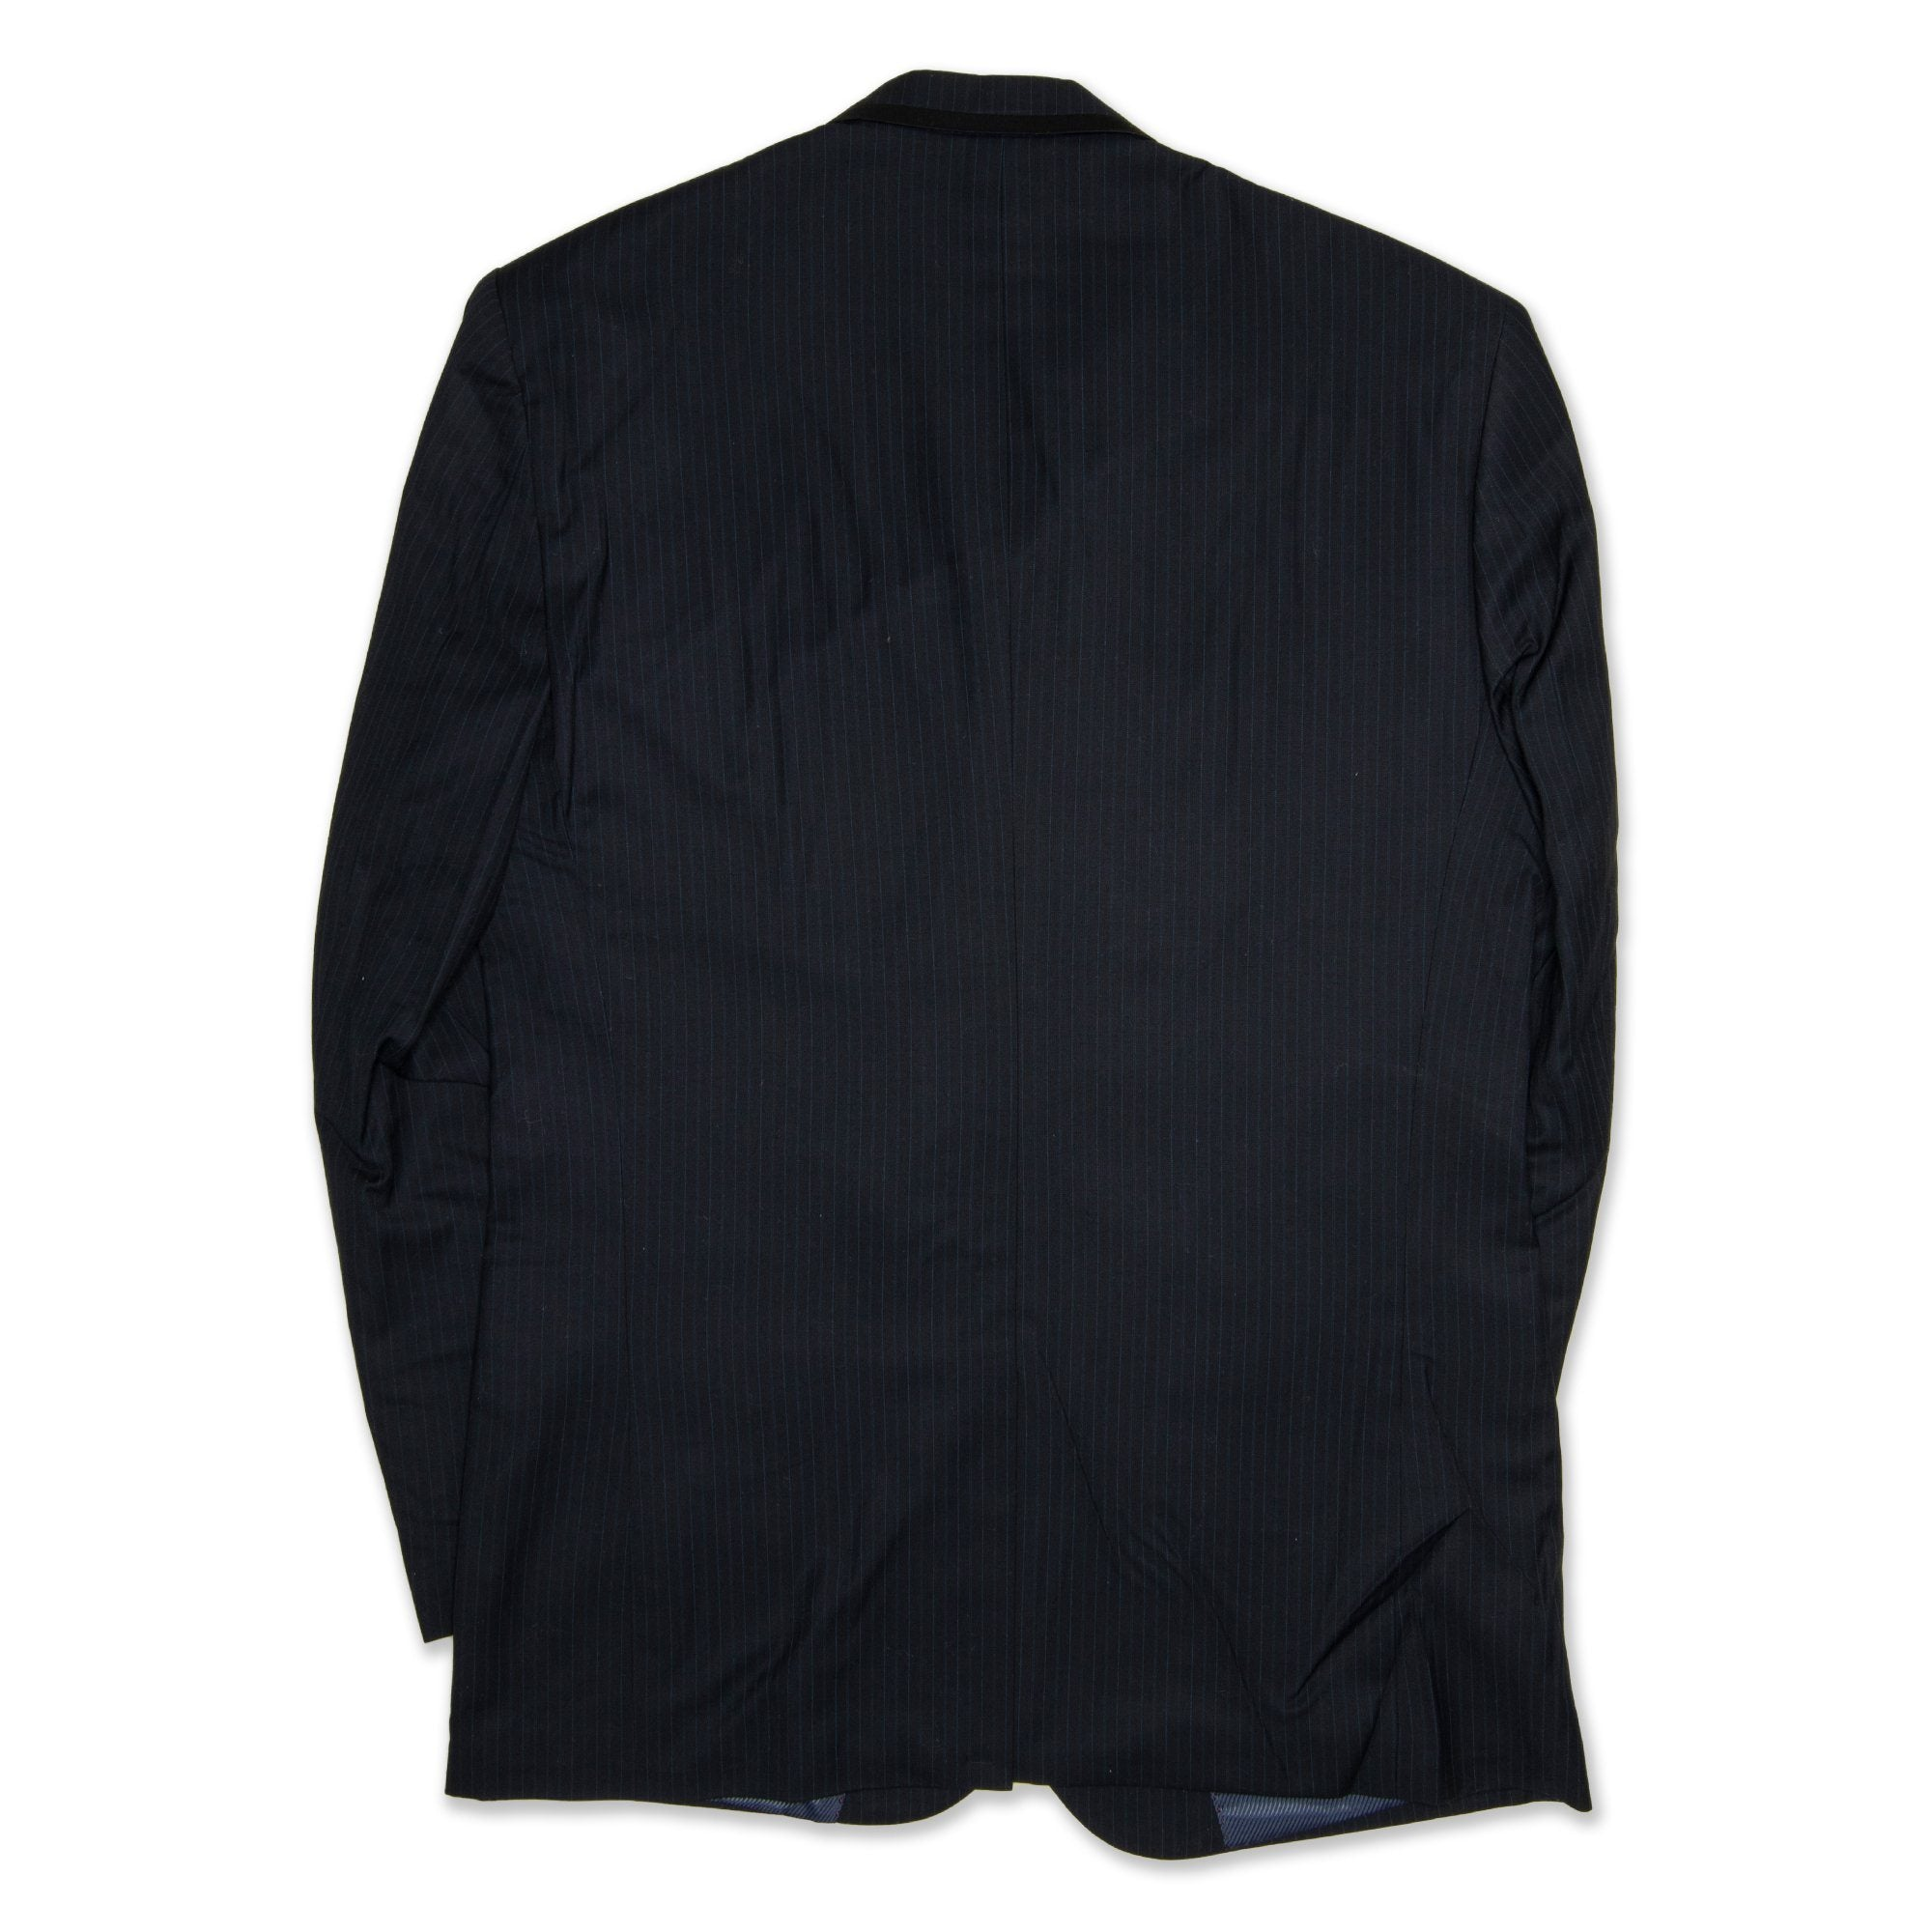 Bracks Single Breasted Men's Jacket Pinstripe - Navy Workwear Bracks